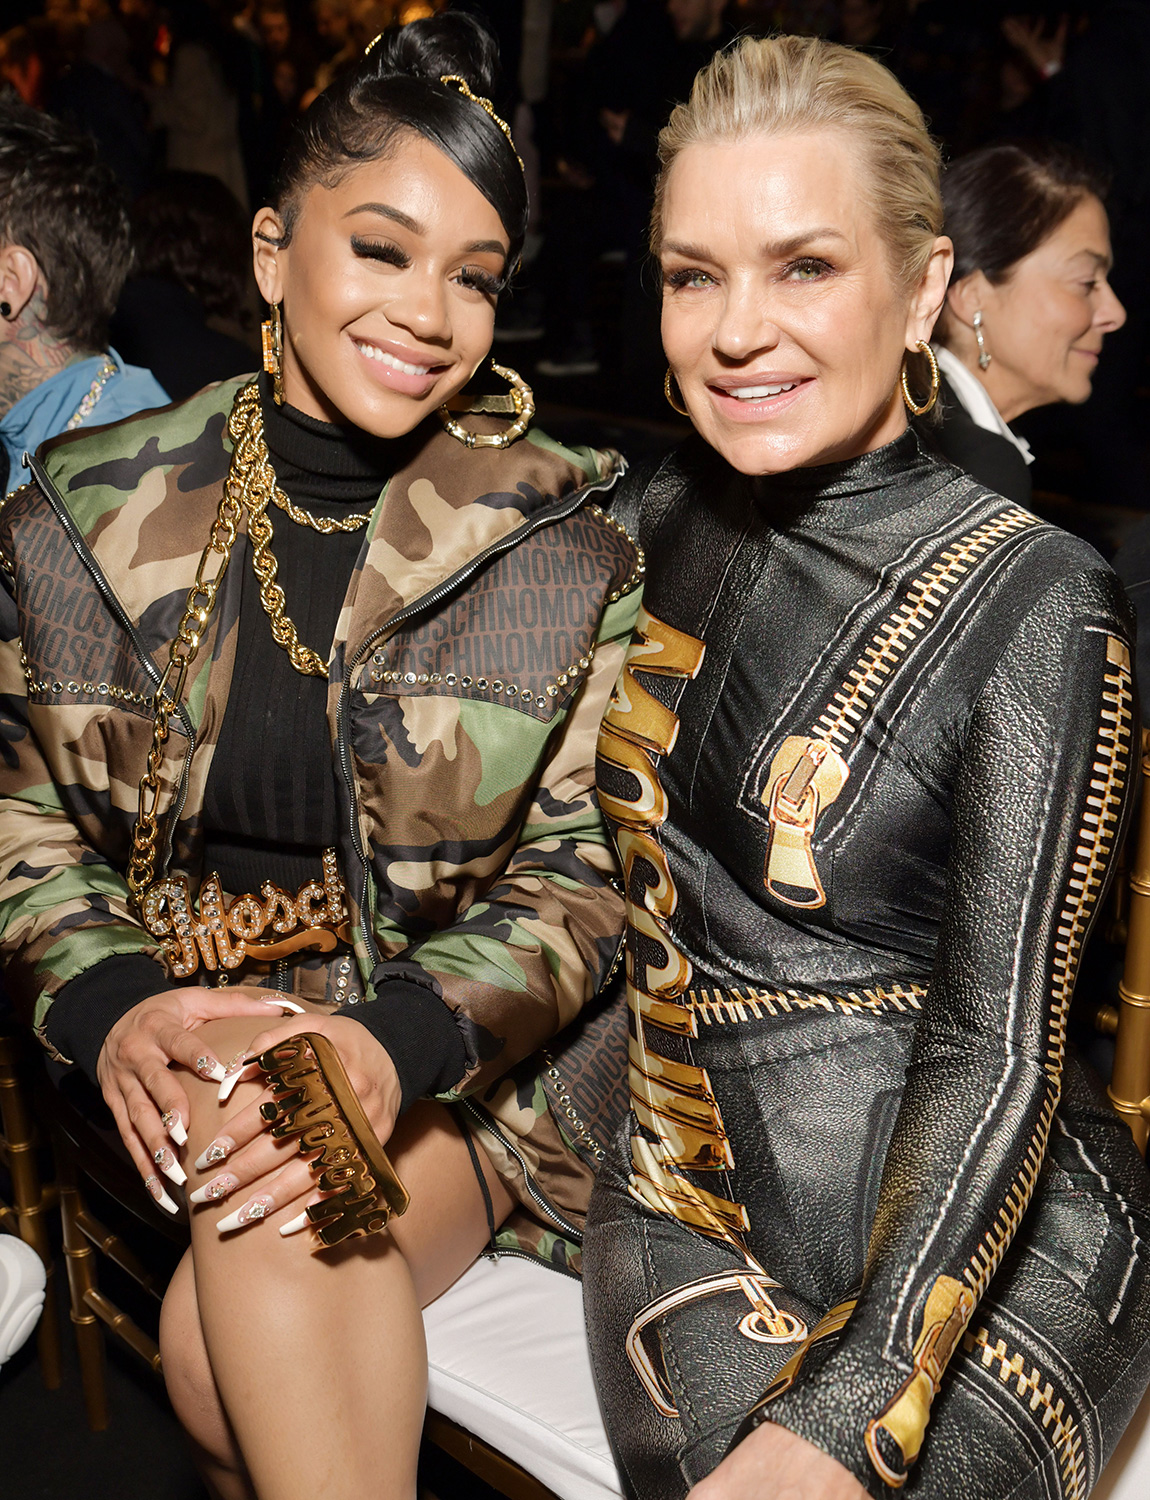 Saweetie and Yolanda Hadid in the front row Moschino show, Front Row, Fall Winter 2020, Milan Fashion Week, Italy - 20 Feb 2020